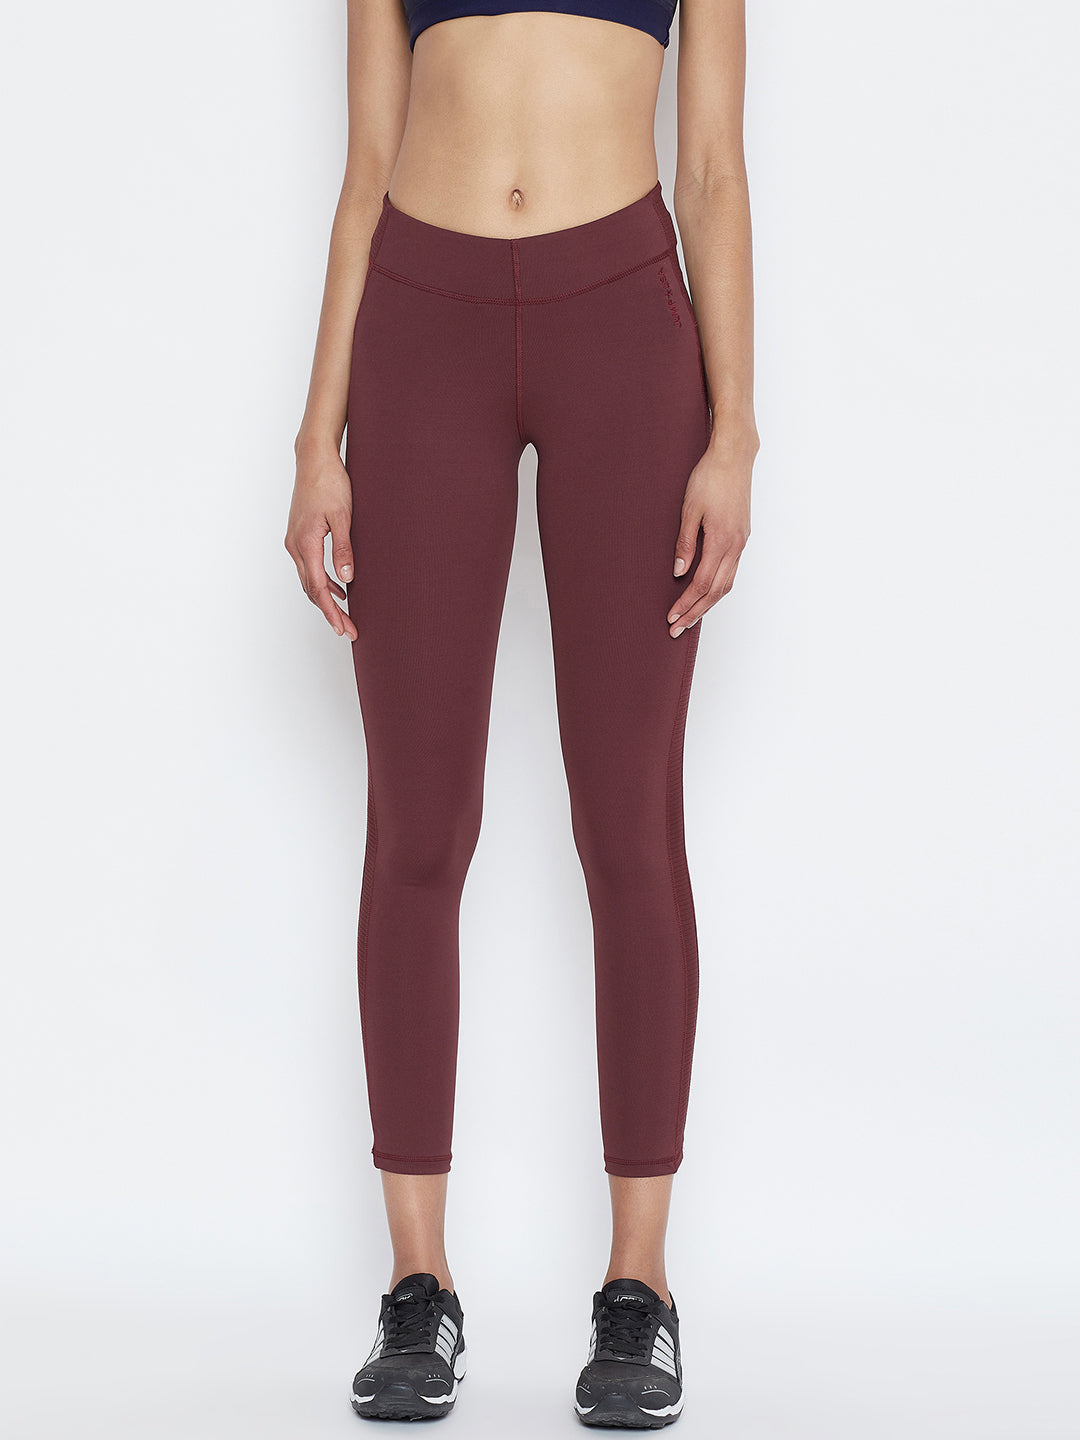 JUMP USA Women Solid Active Wear Maroon Tights - JUMP USA